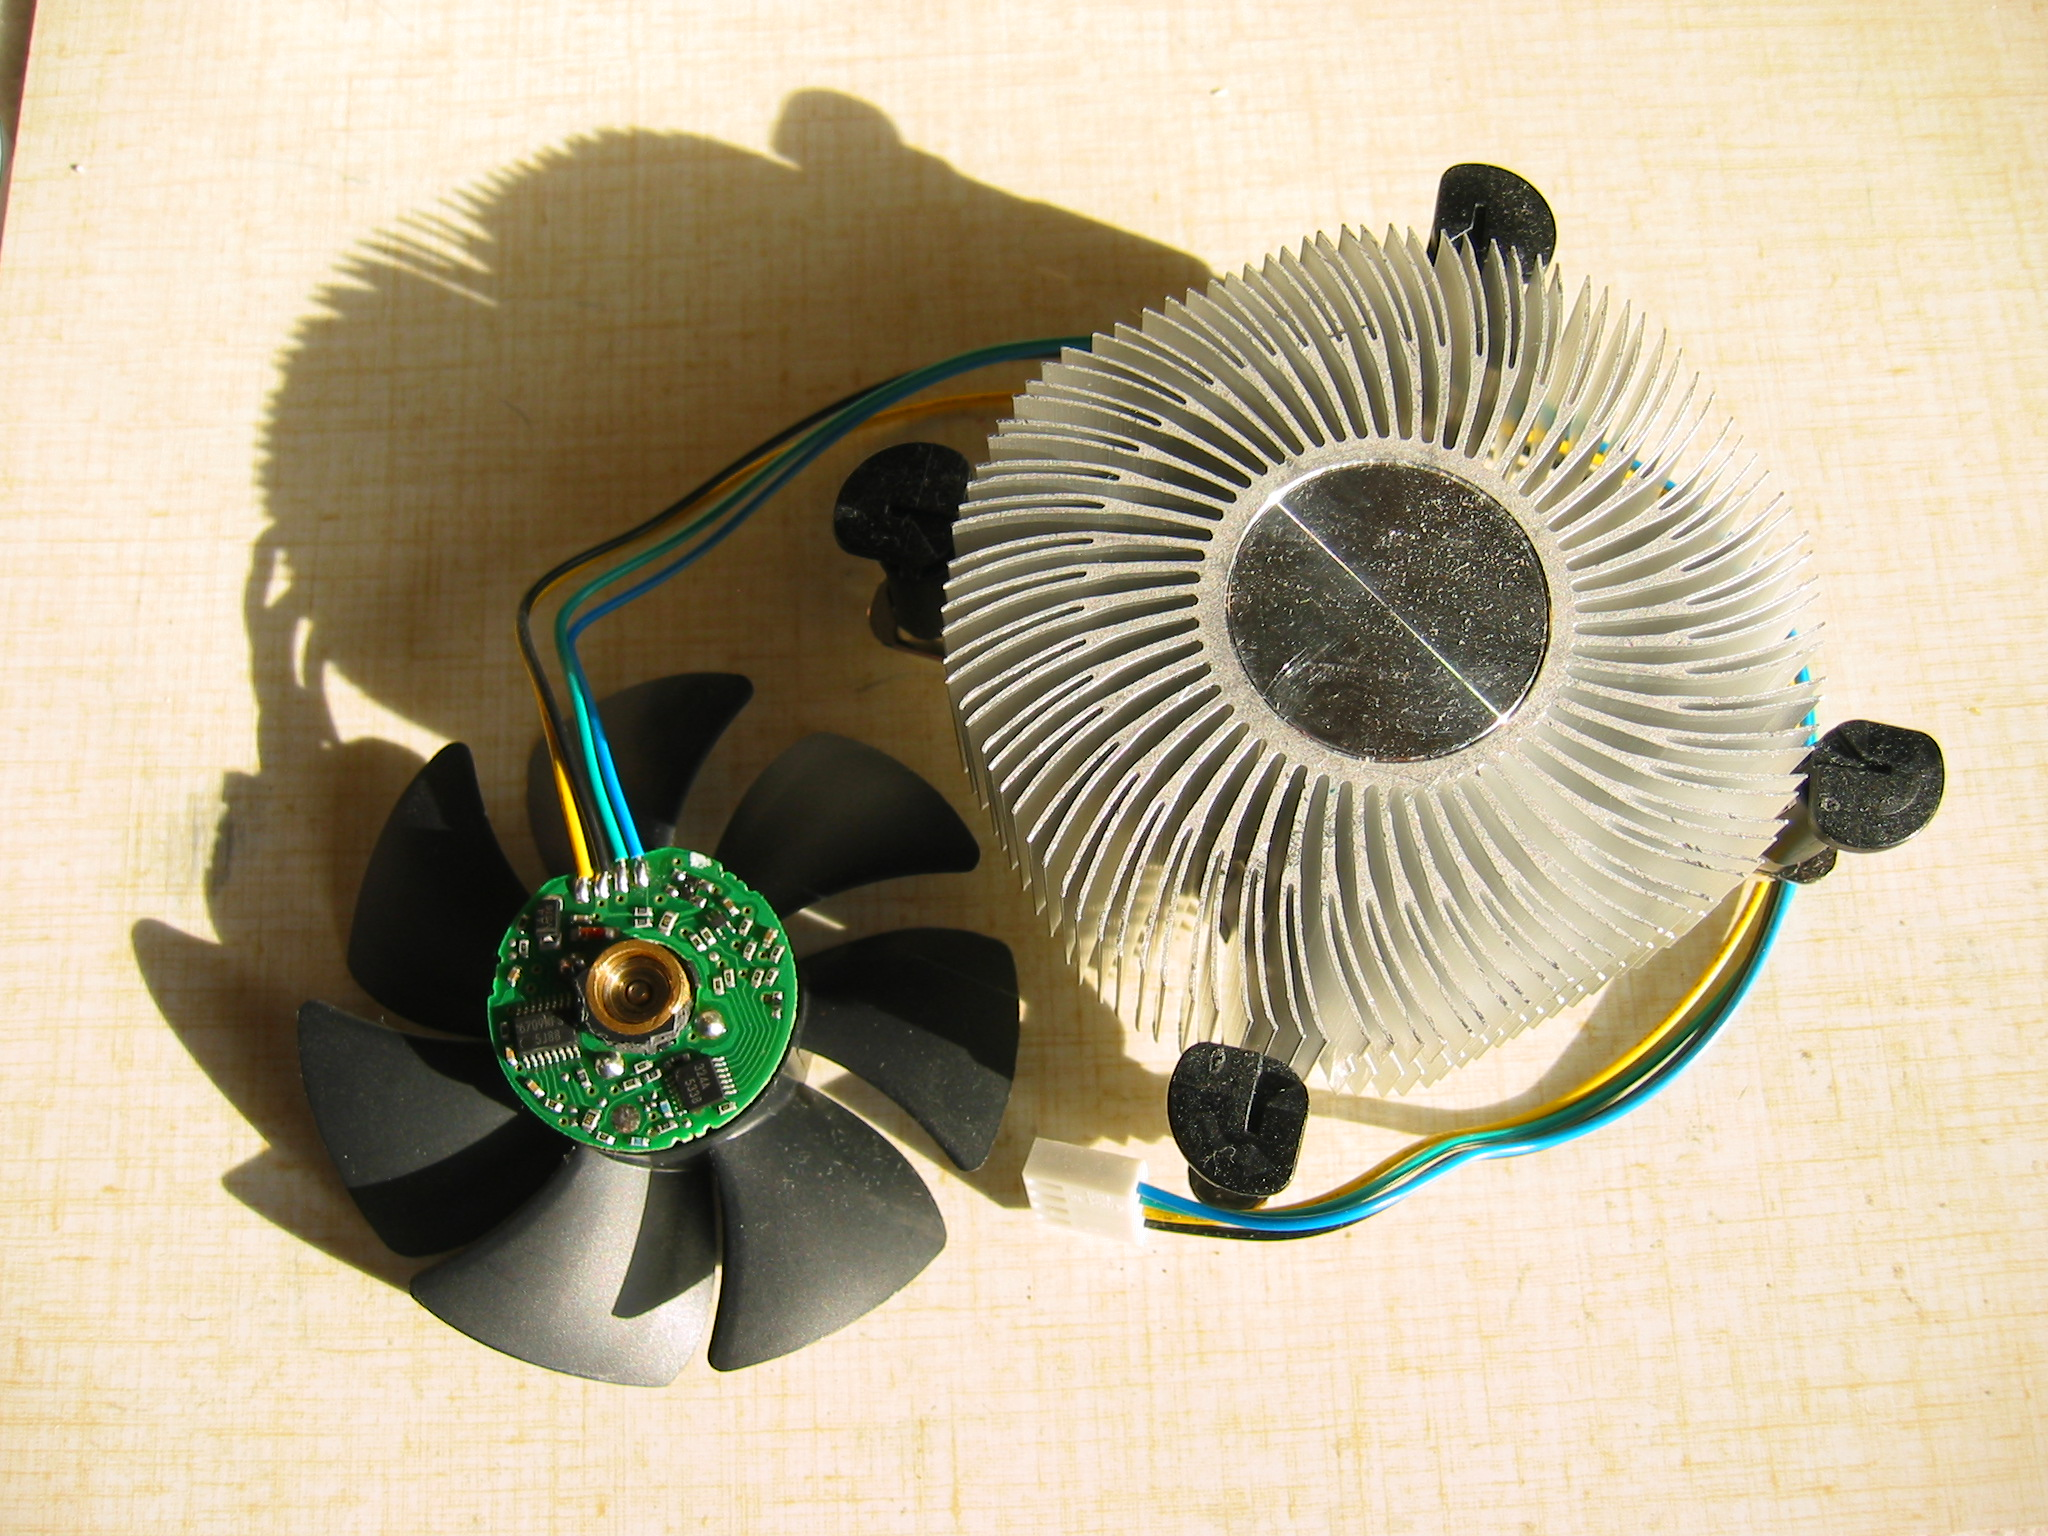 4 Wire Fans Exhaust Fan Wiring Diagram 3 Wires With Heatsink Photo3 Nidec